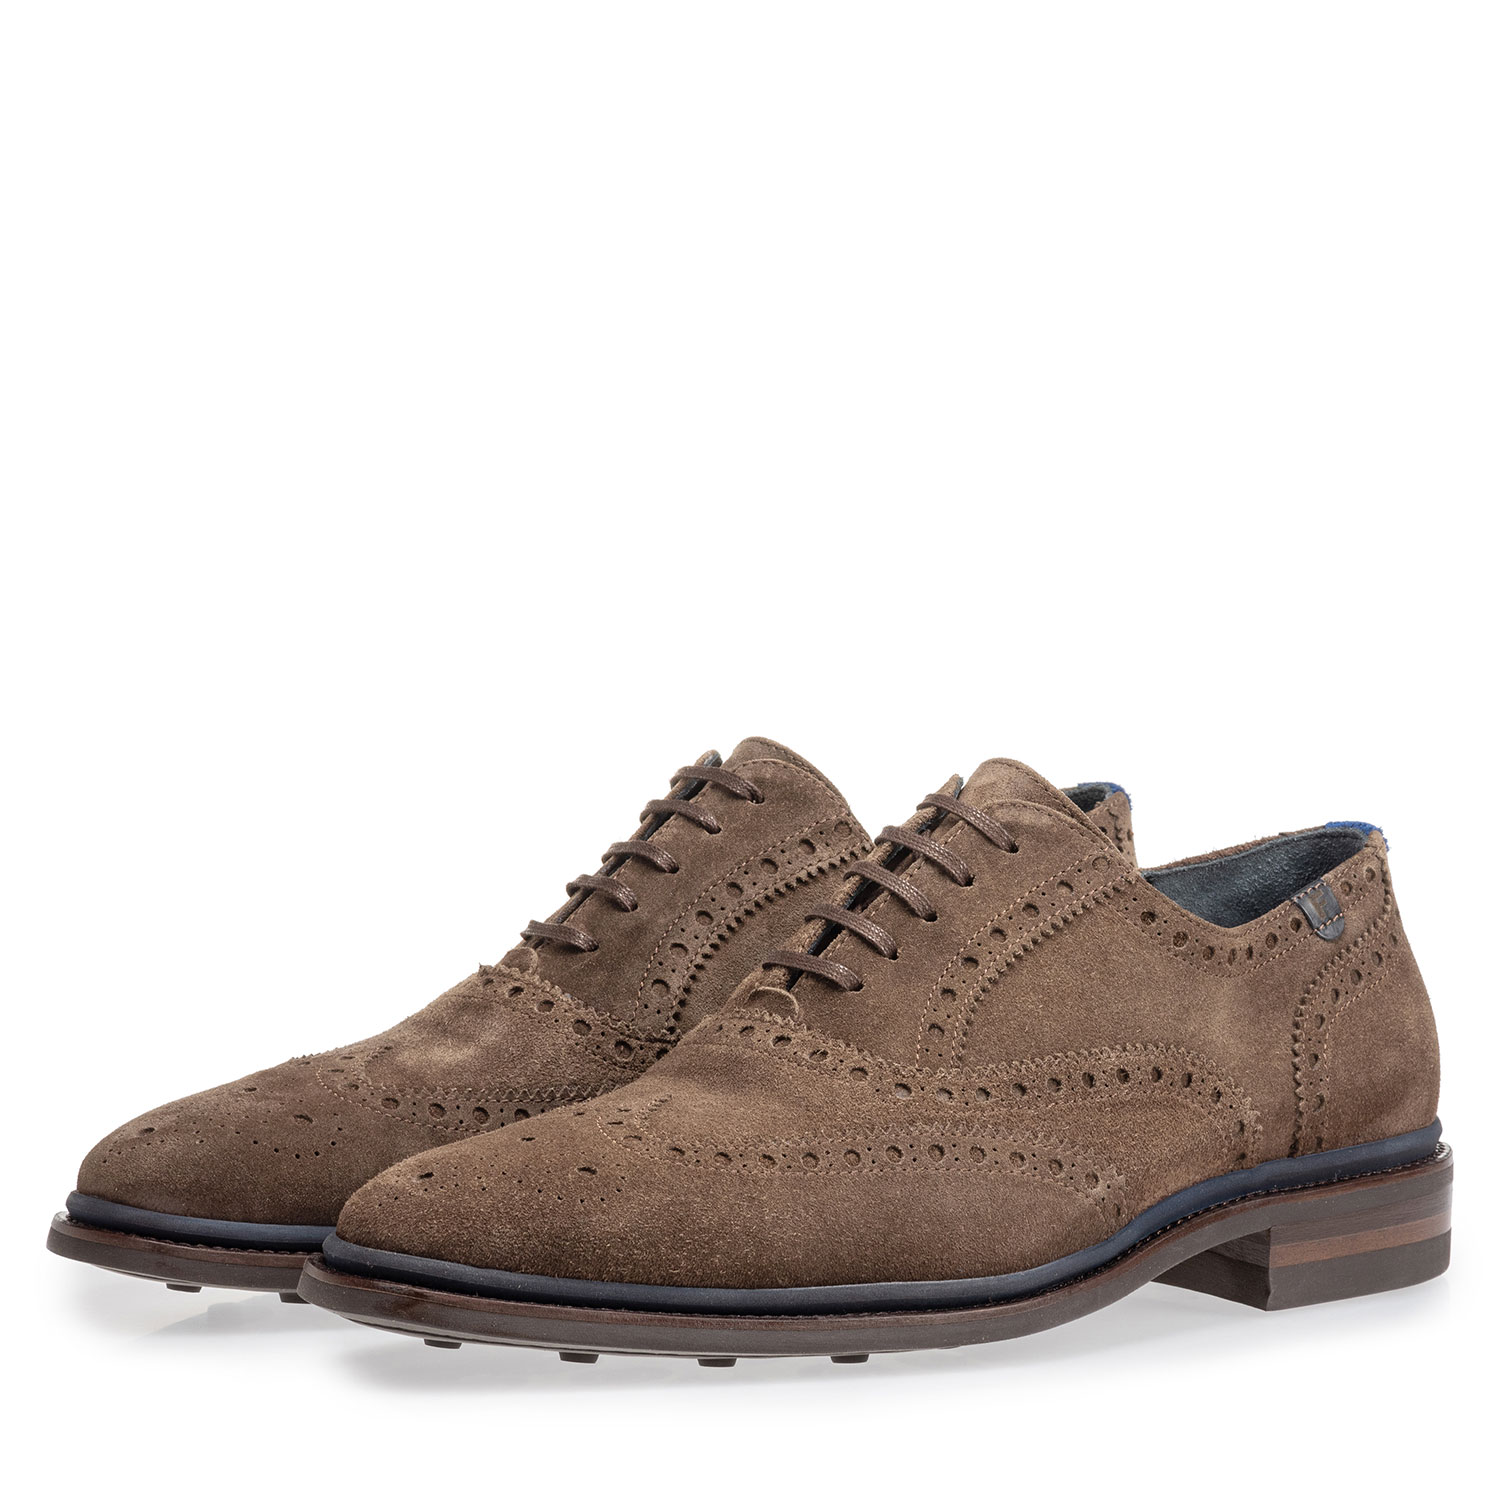 19172/03 - Brogue suède donker taupe